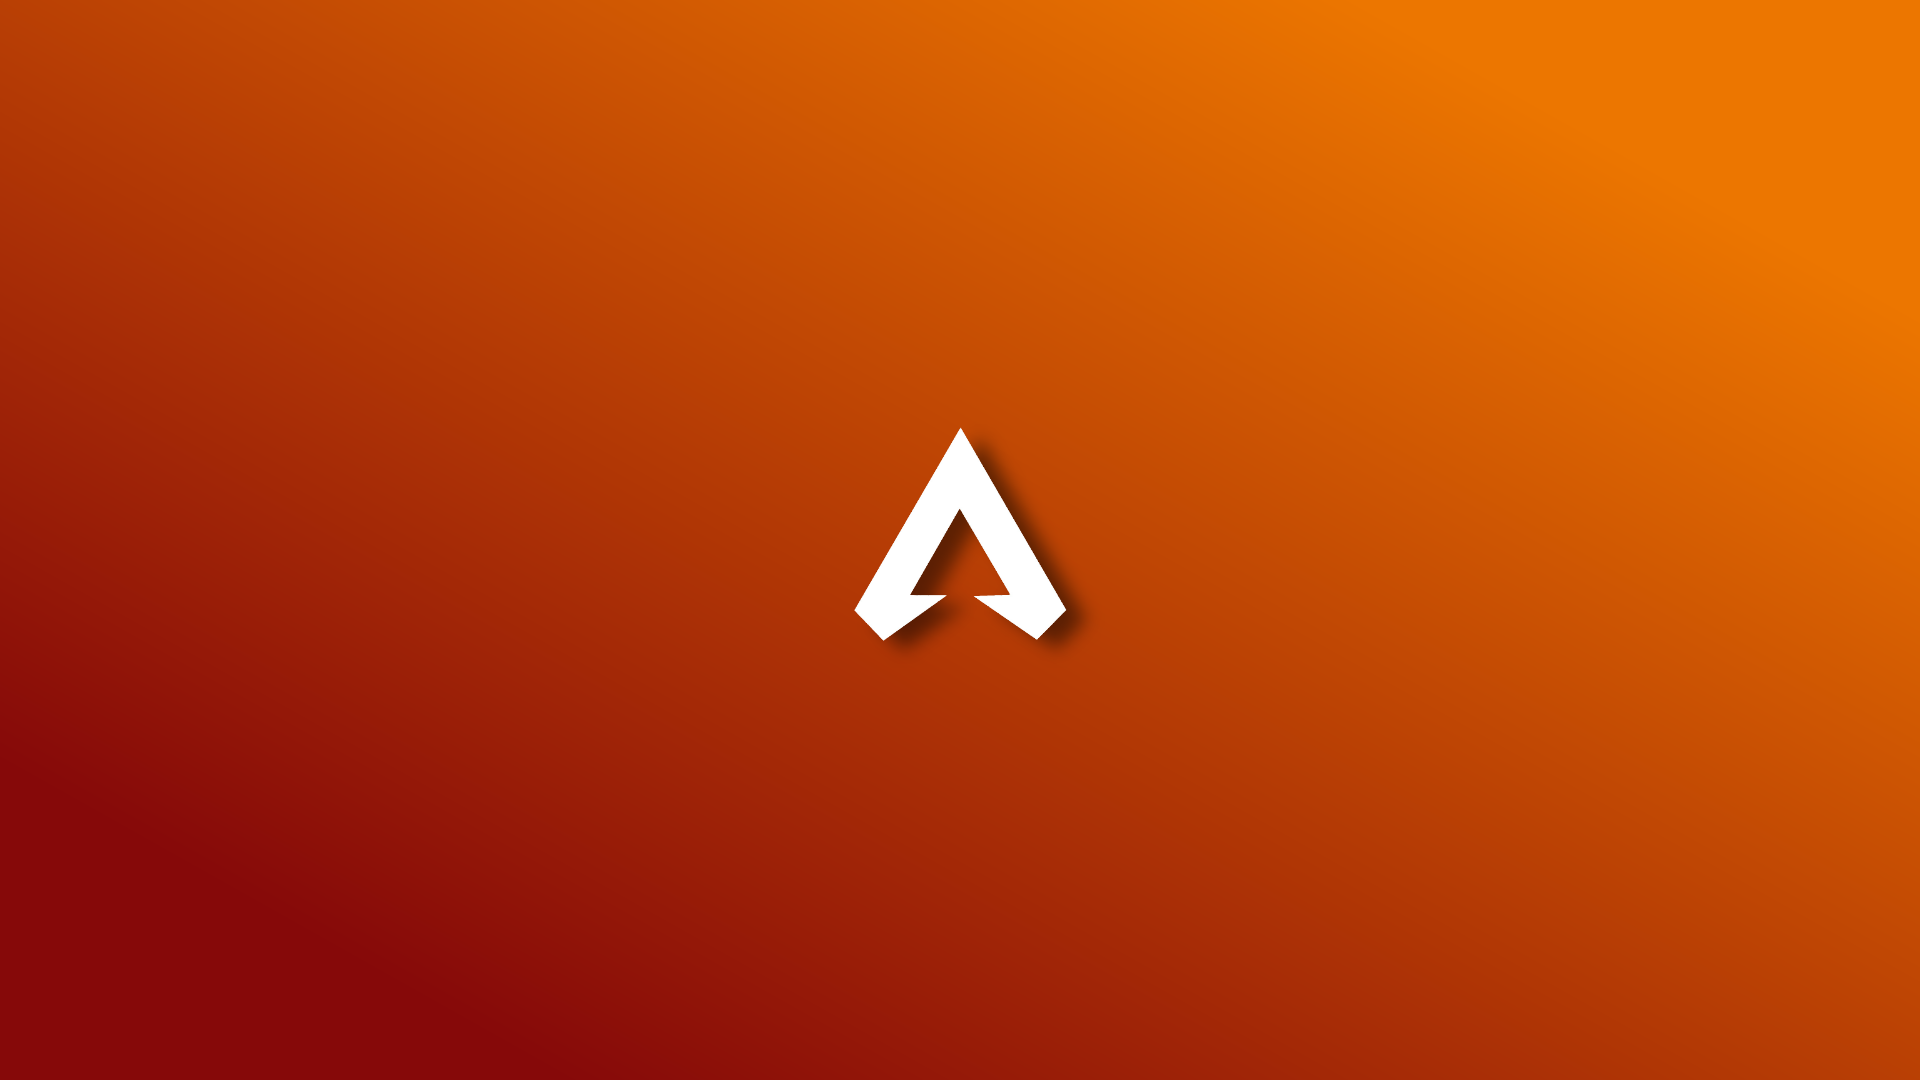 1920x1080 Apex Legends Wallpaper Background Image View Download Comment And Rate Wallpaper Abyss